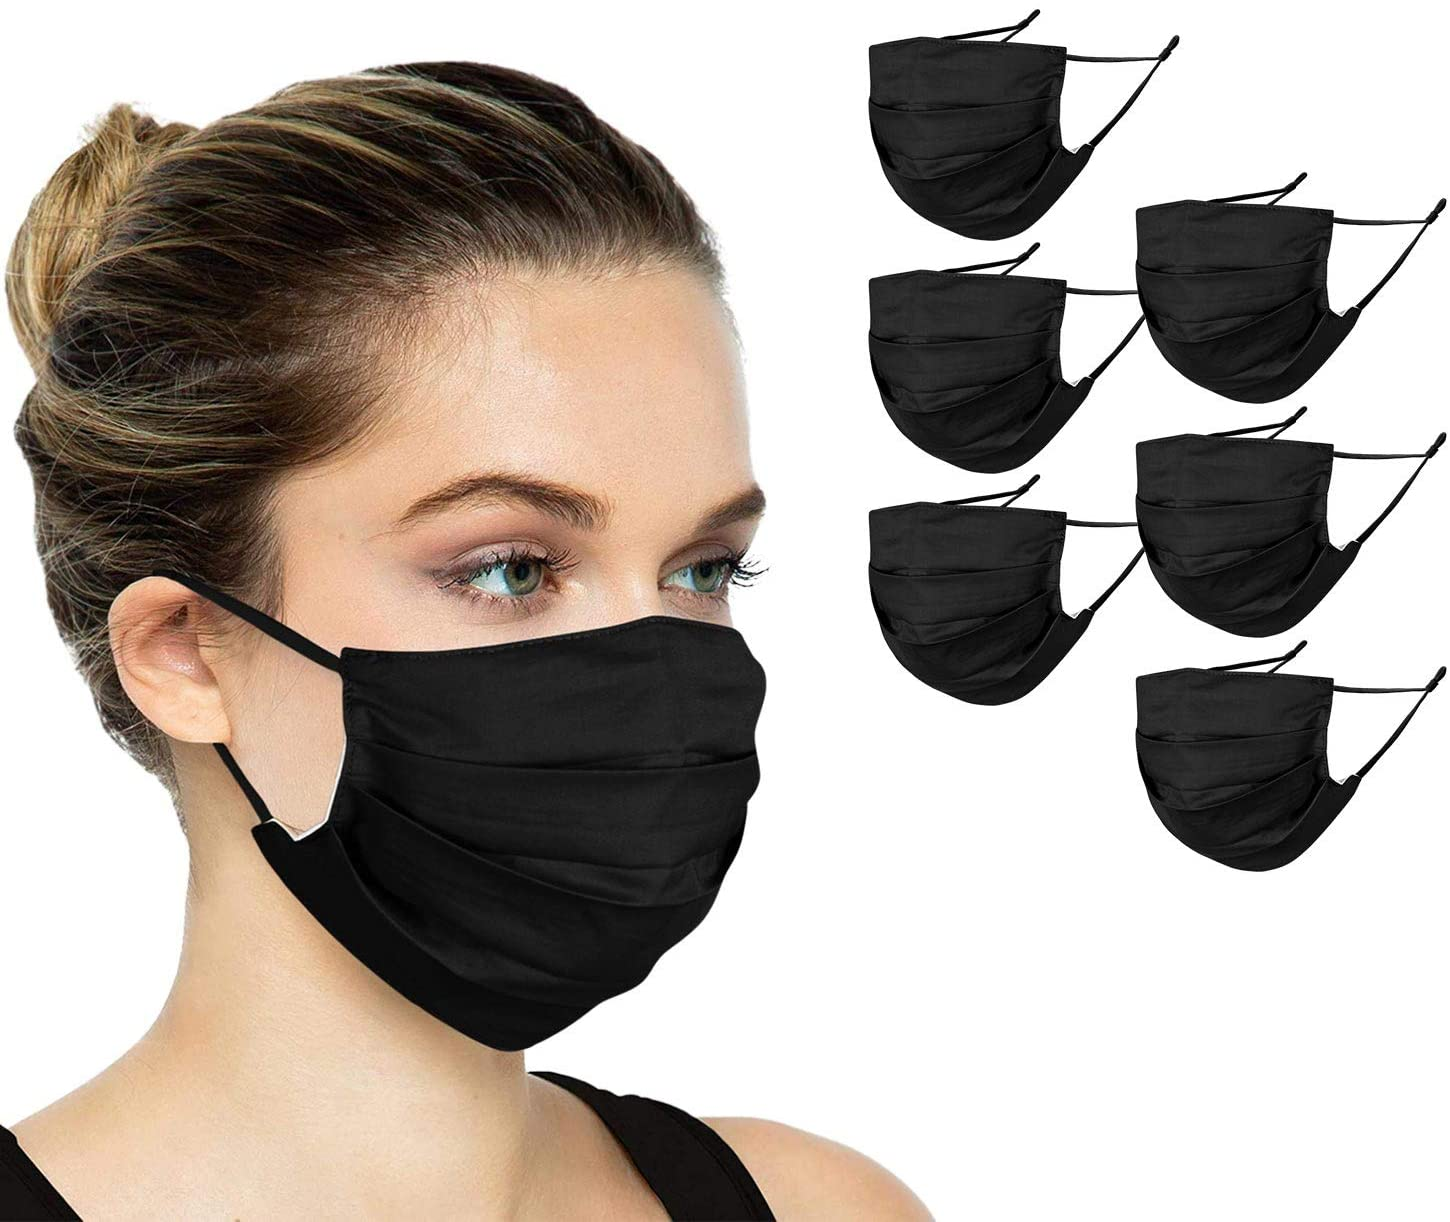 6 Pack Unisex Reusable Pleated Cotton Cloth Face Mask with Adjustable Elastic, 2 Layers, Washable, Adjustable Nose Bridge (Size OS, 6 Pack)